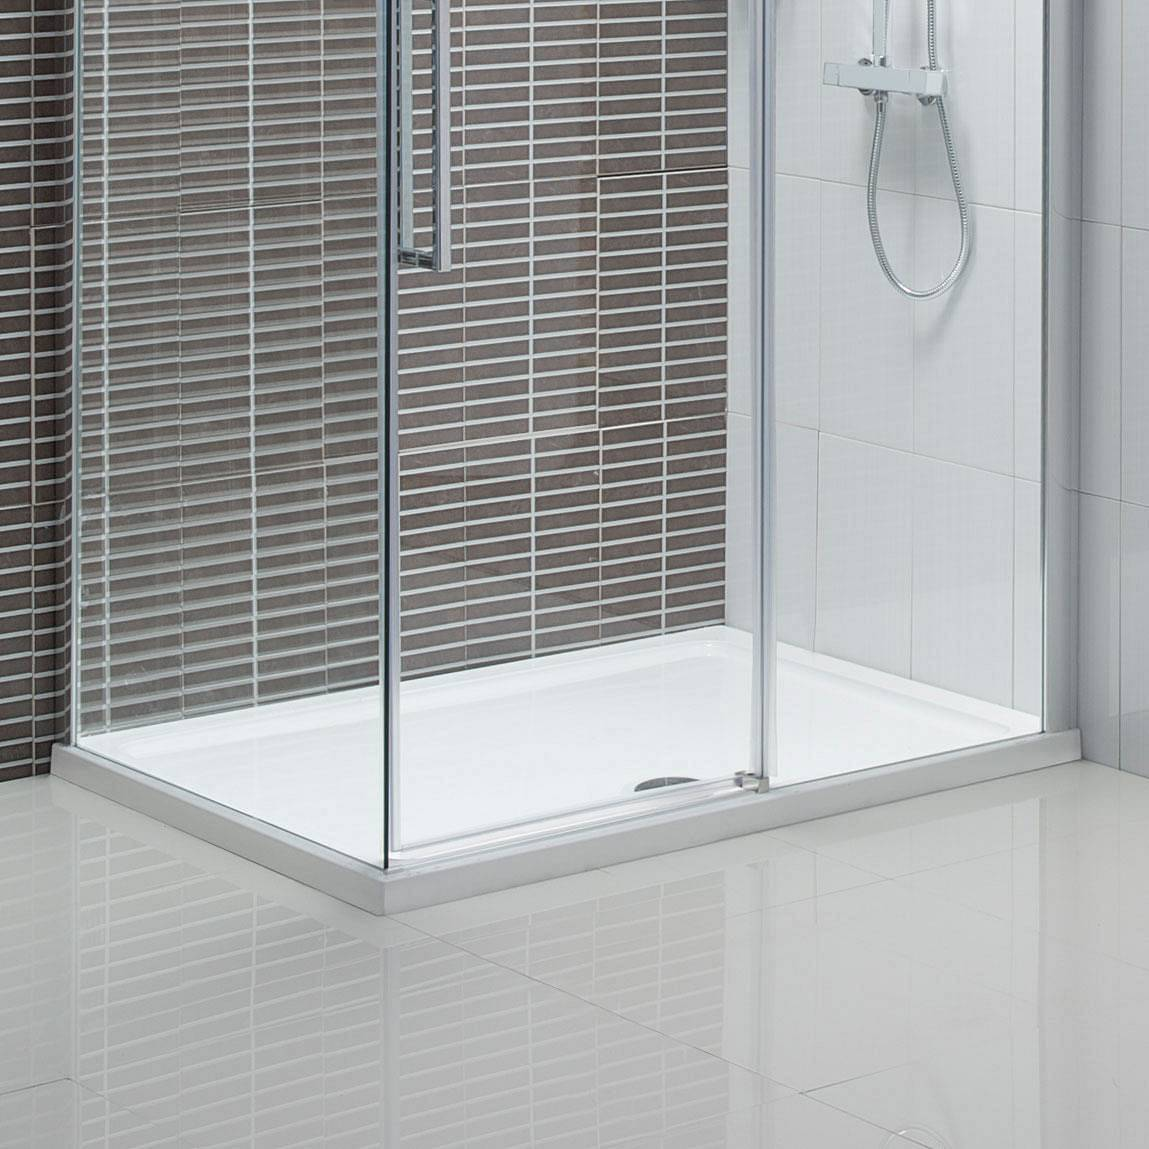 Shower Tray 700 x 1100 Shower Tray 1100 x 800